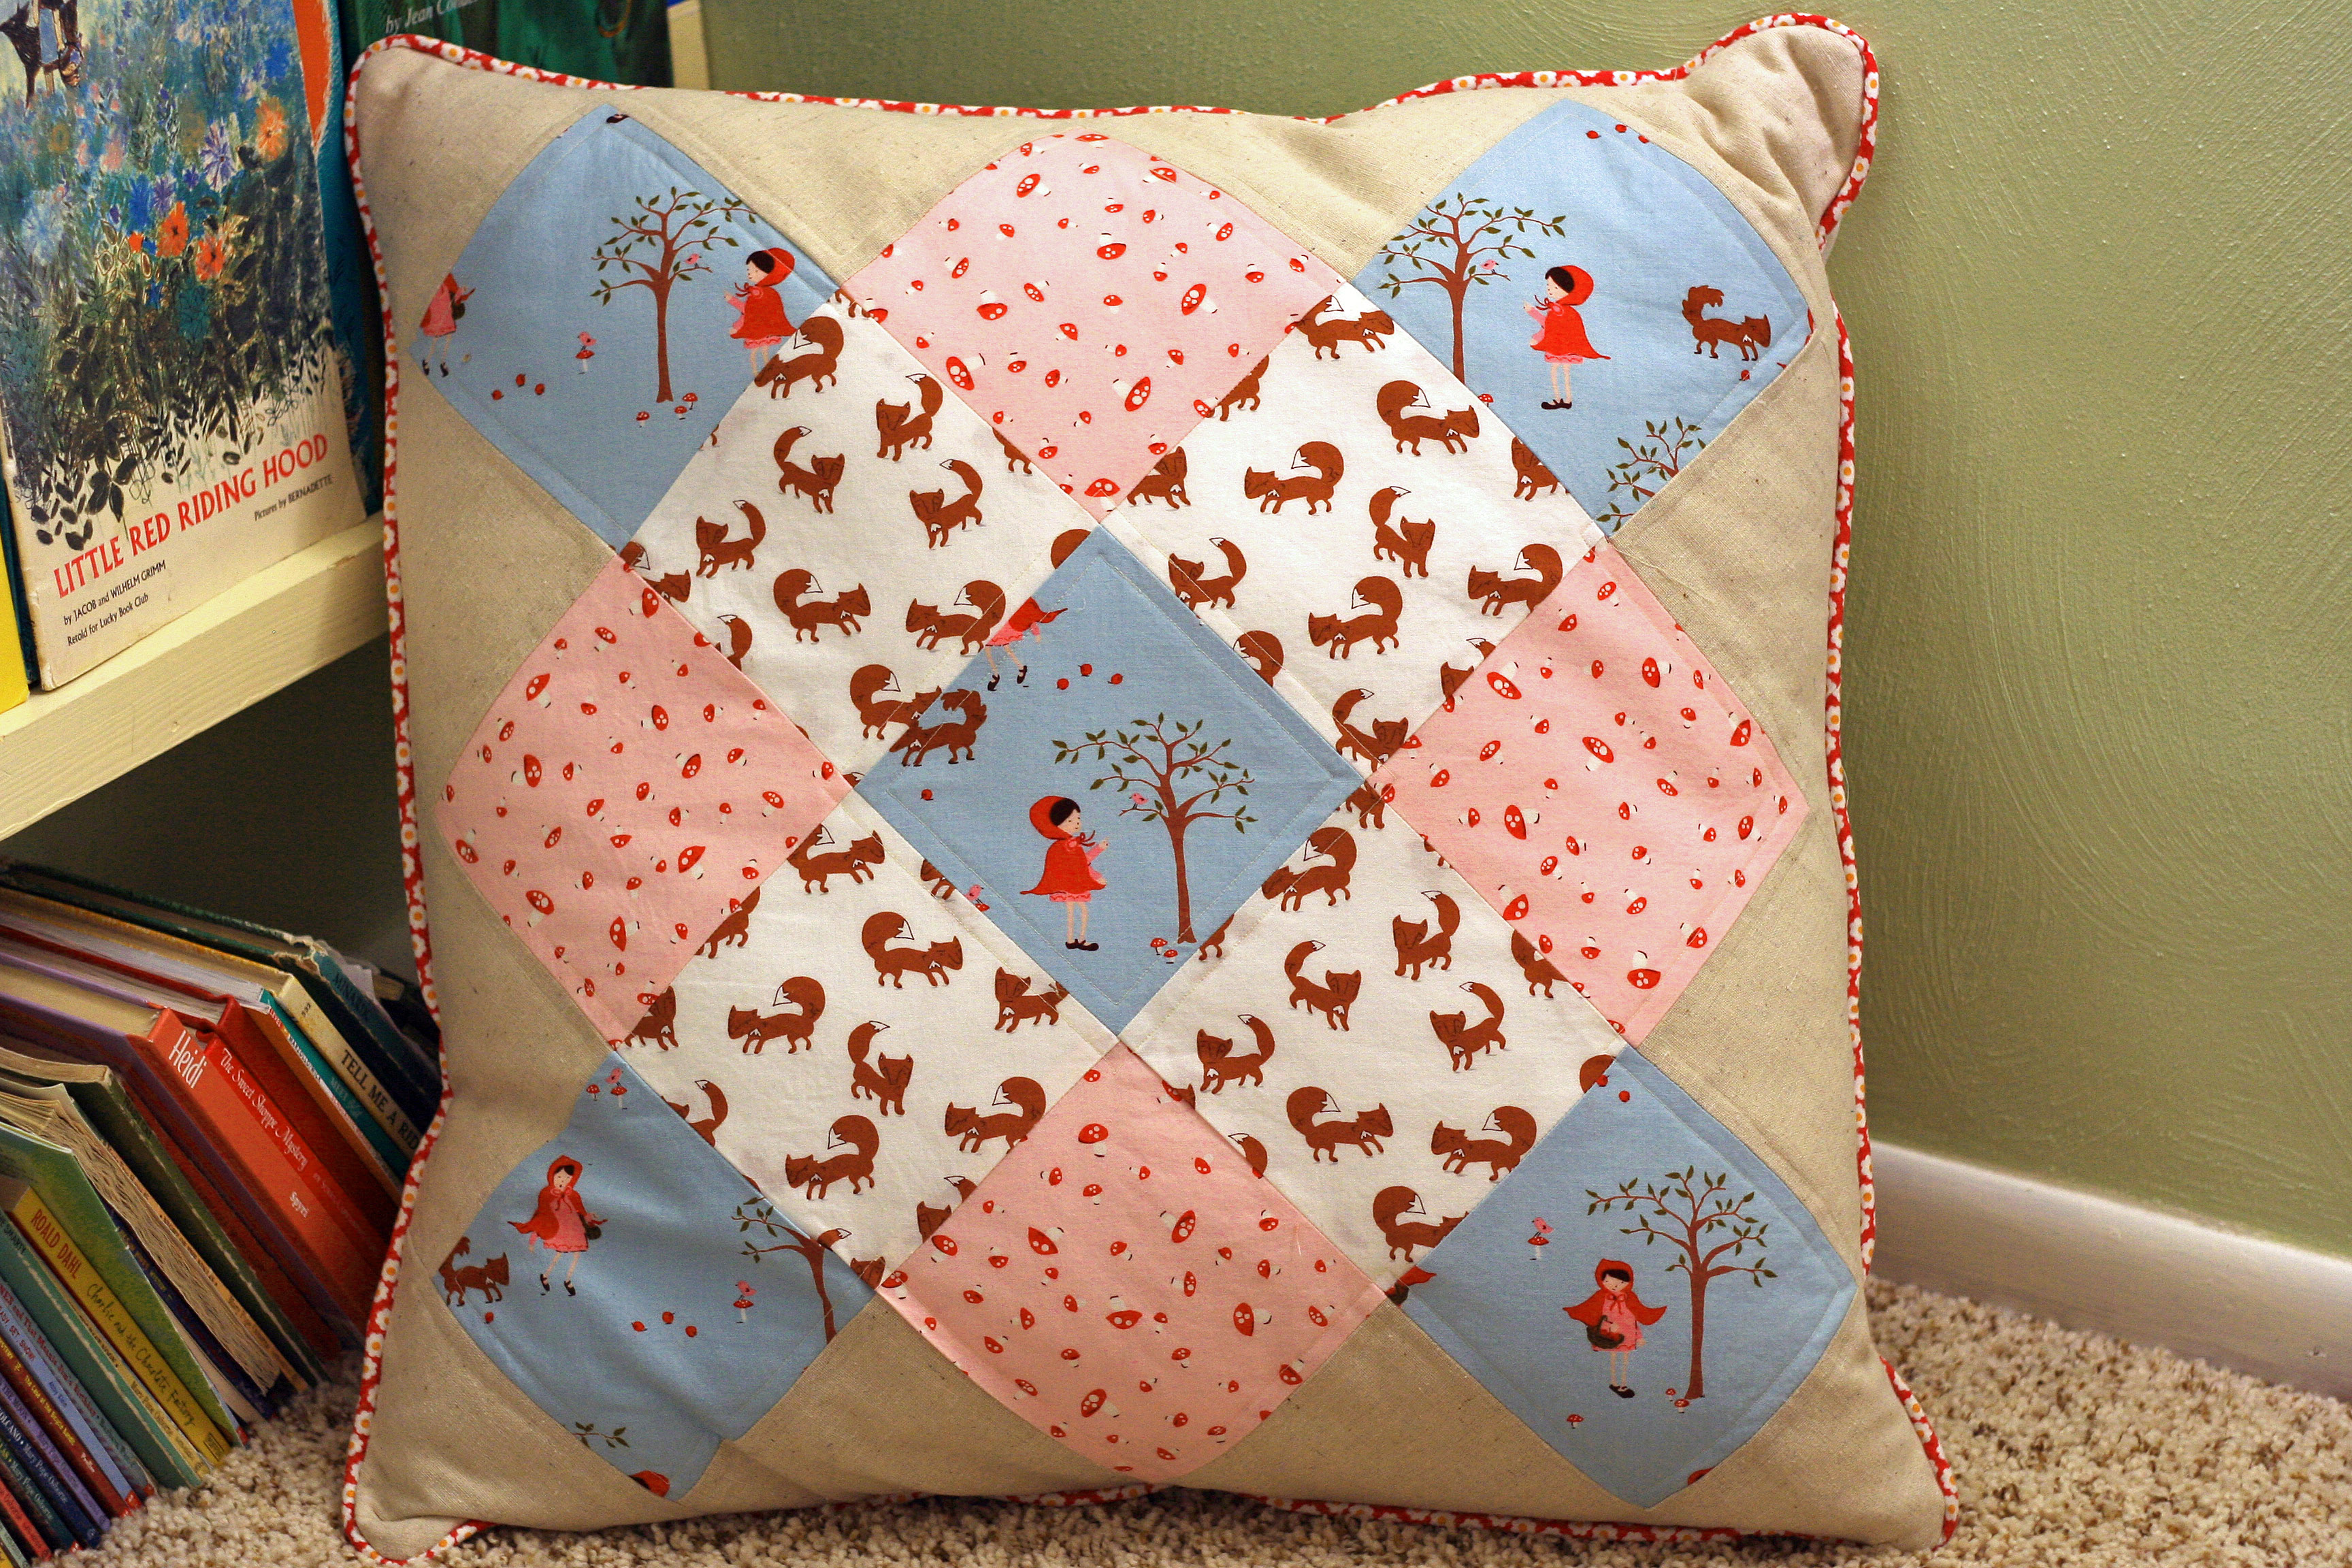 Floor Pillow for the Reading Nook Gingercake